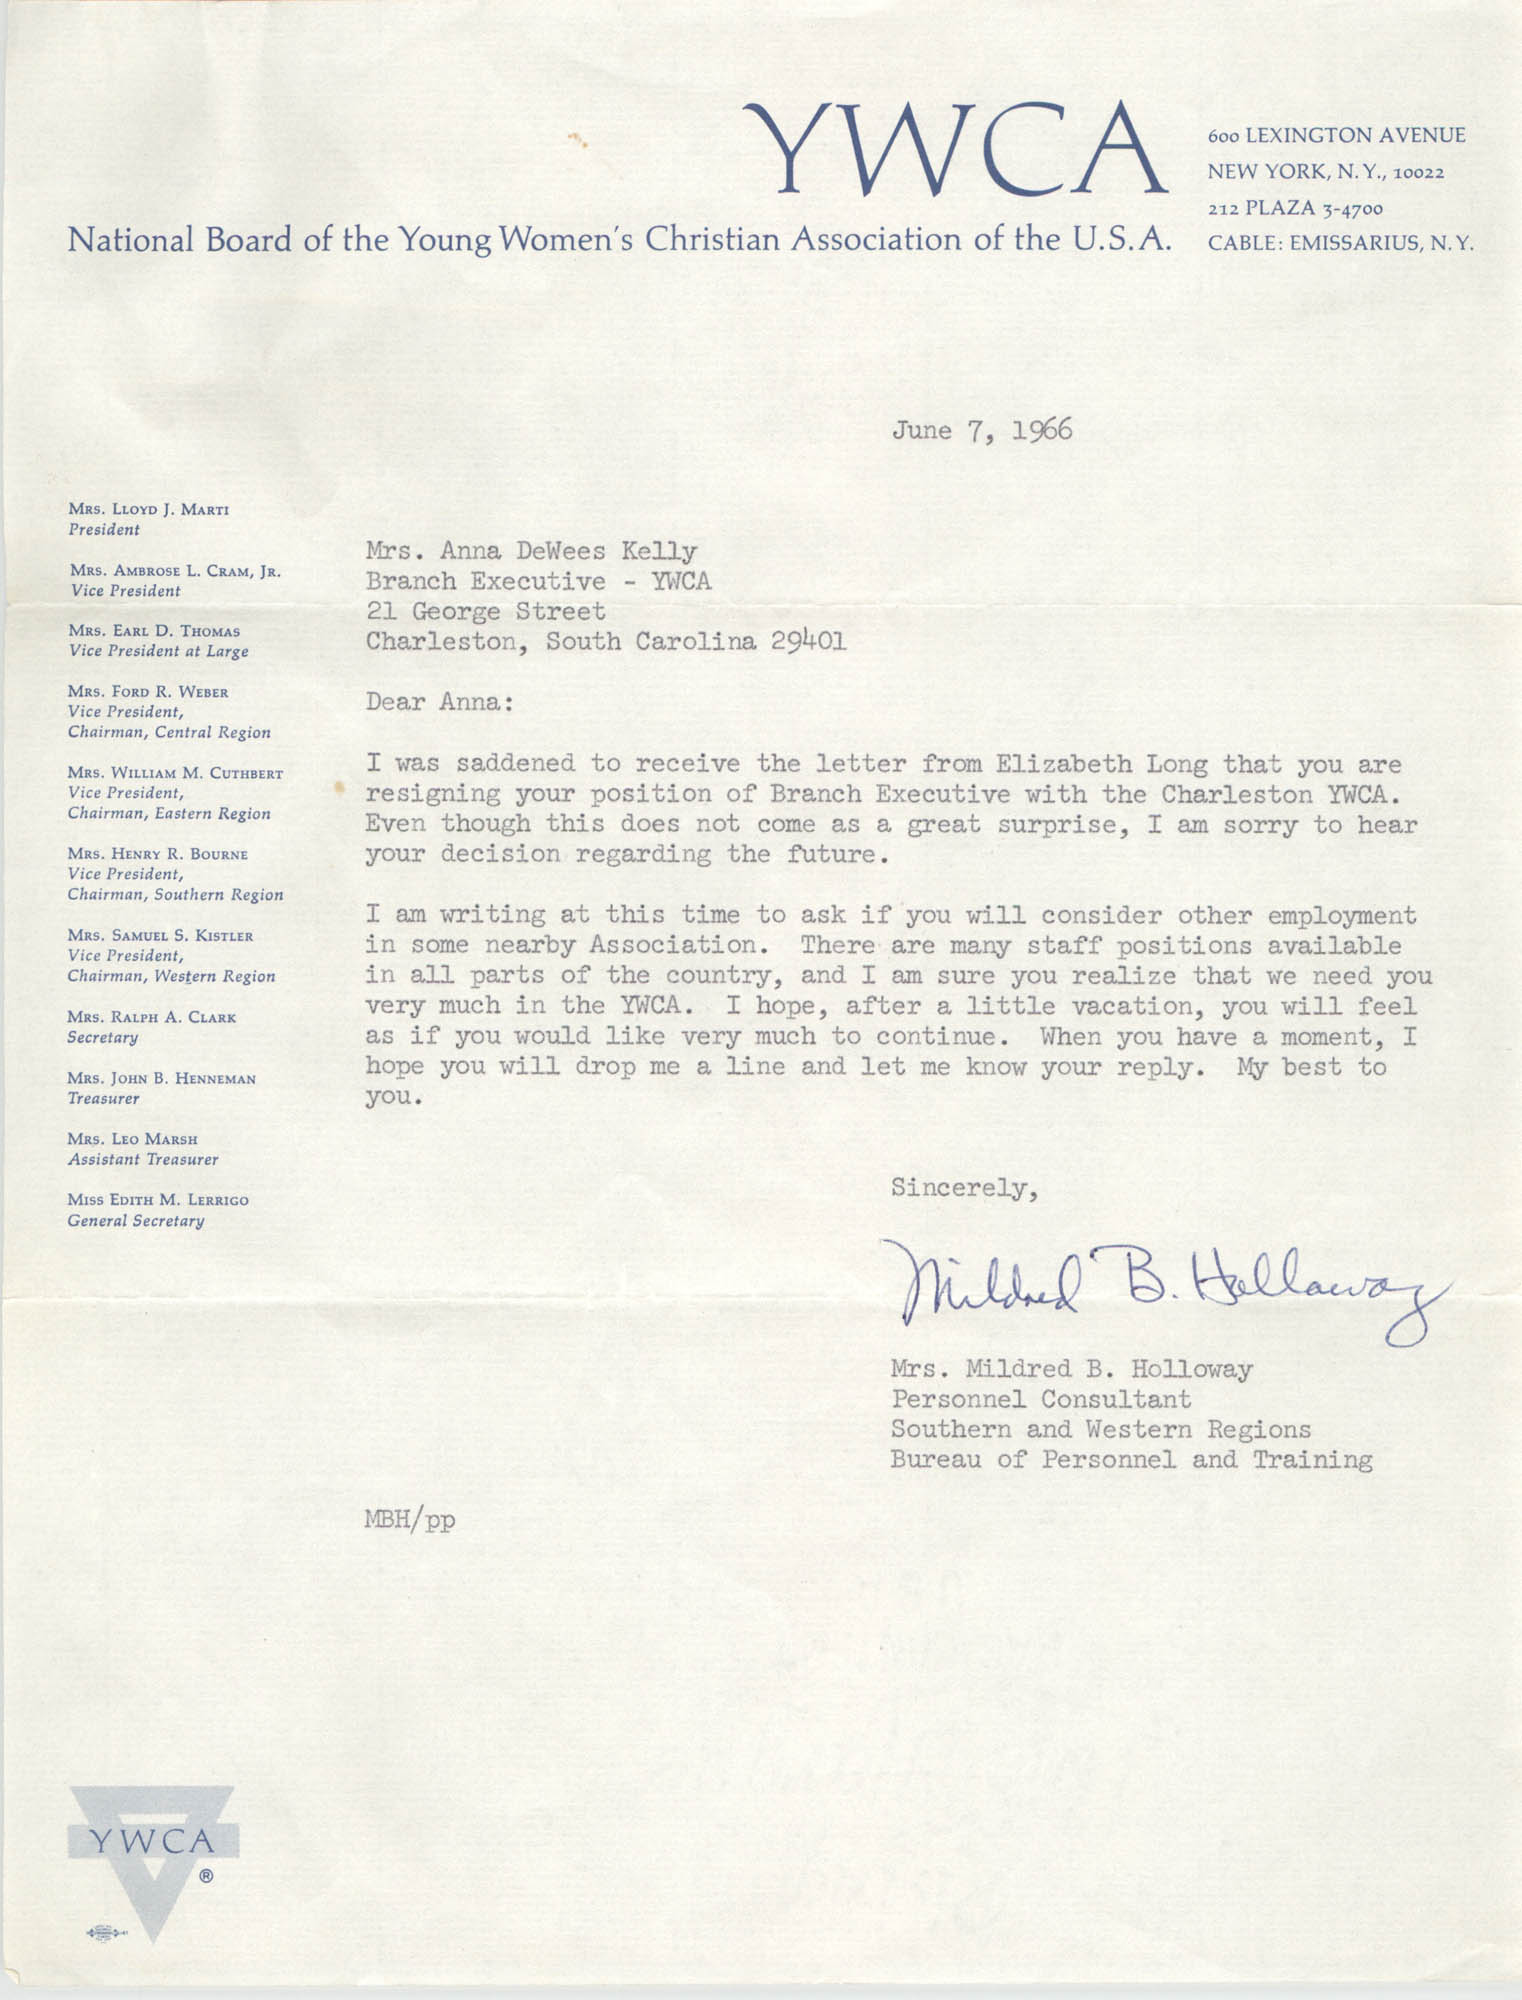 Letter from Mildred B. Holloway to Anna D. Kelly, June 7, 1966